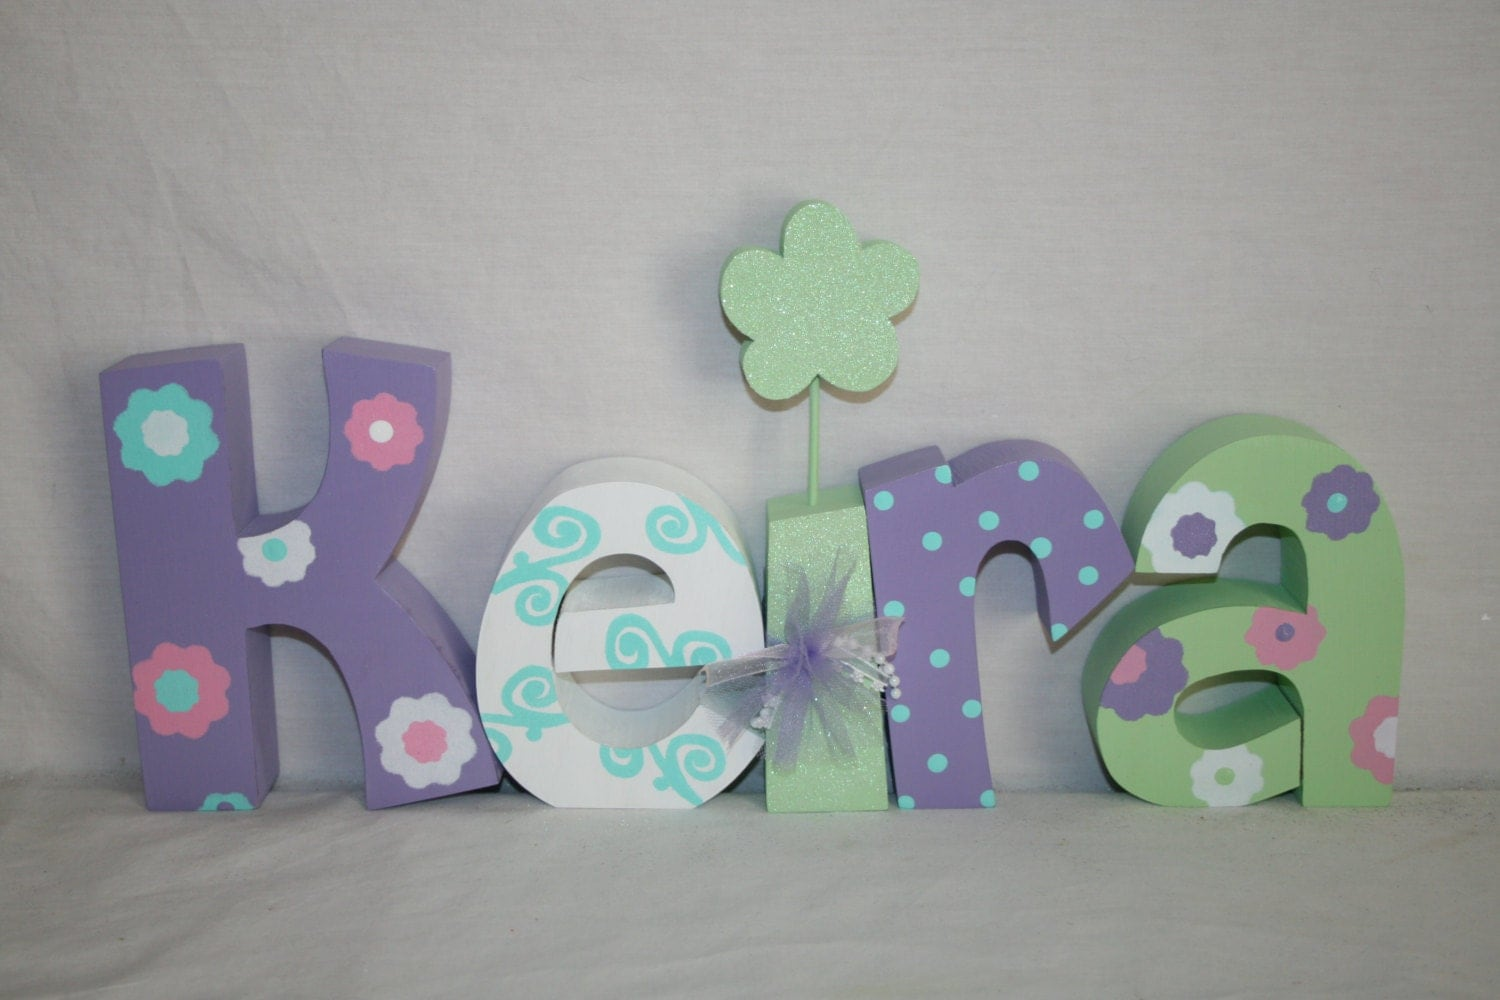 custom wood letters nursery decor 5 letter set purple and mint green decor freestanding wood letters kids room decor wood name sign